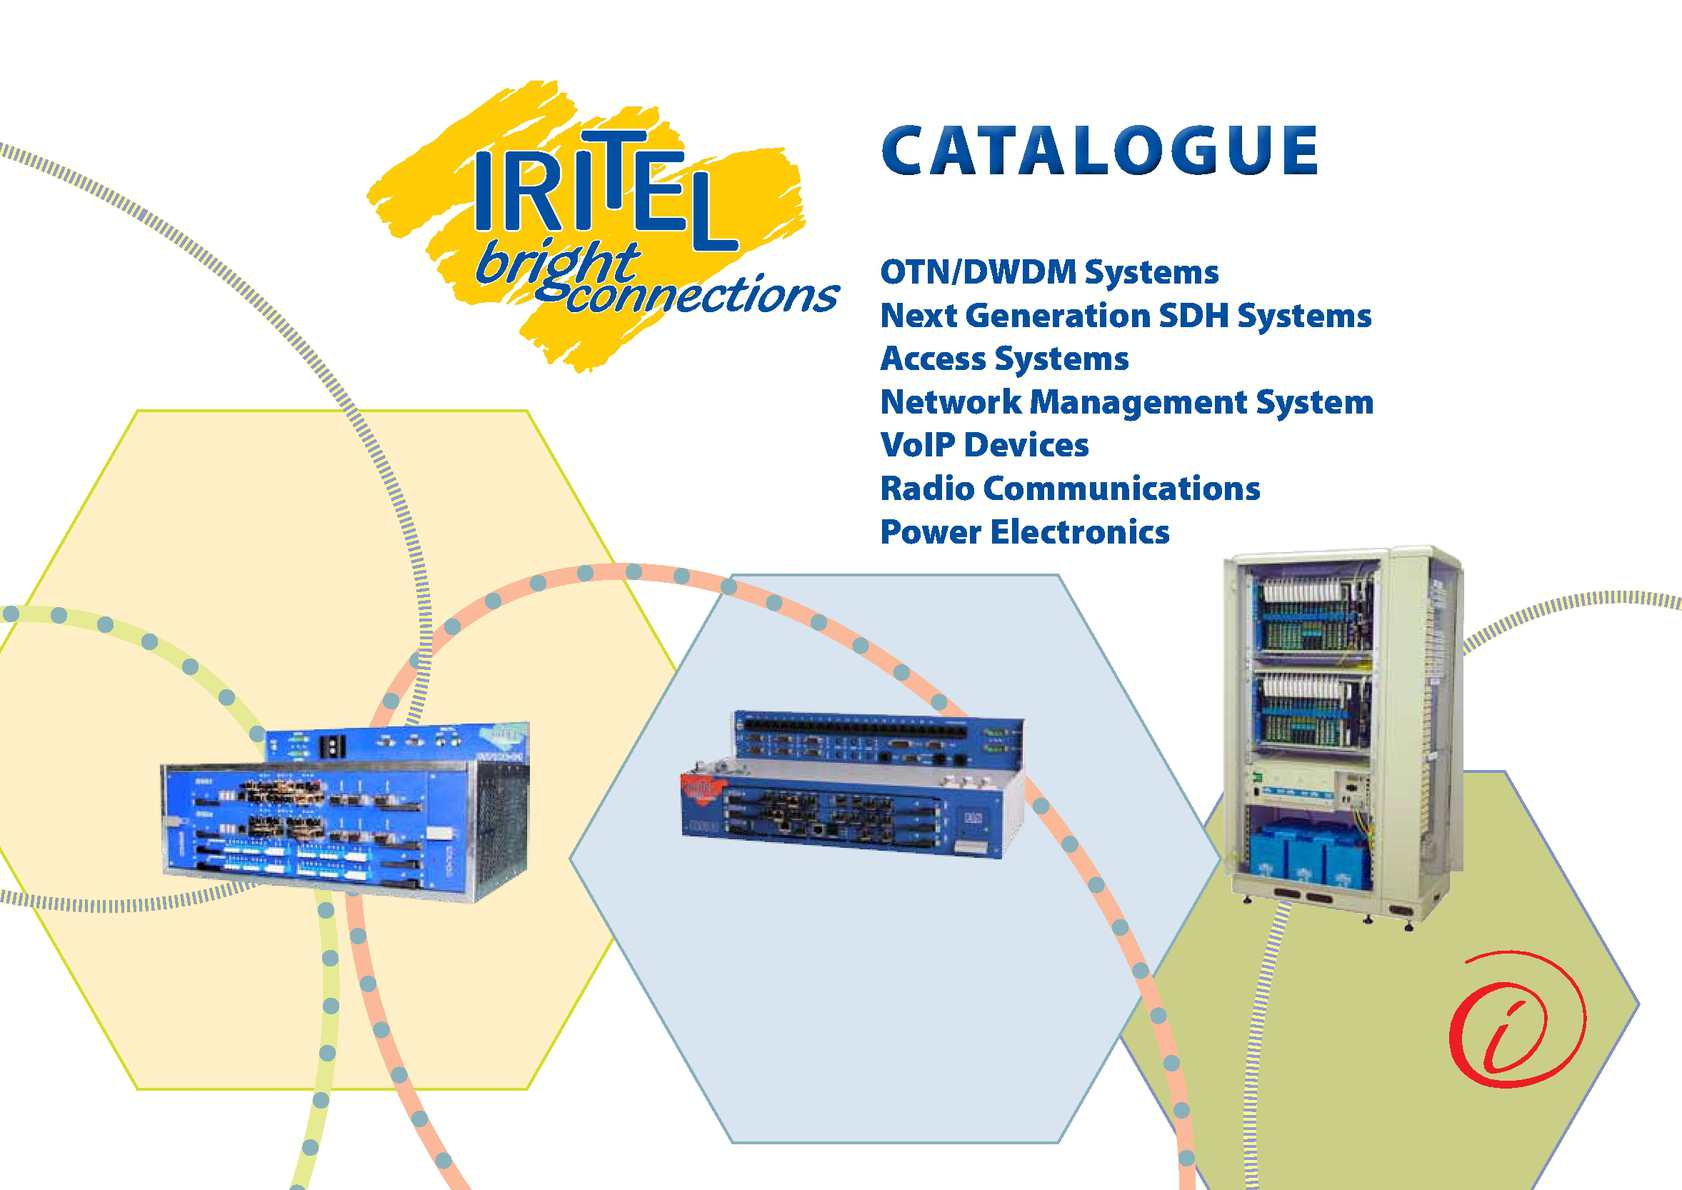 Calamo Iritel Catalogue Otn Dwdm Sdh Sonet Cwdm Wdm 10g Dte Dce Cable Pinout Also T1 Crossover Rj45 Together With Converters Tdm Ip Ethernet Power El